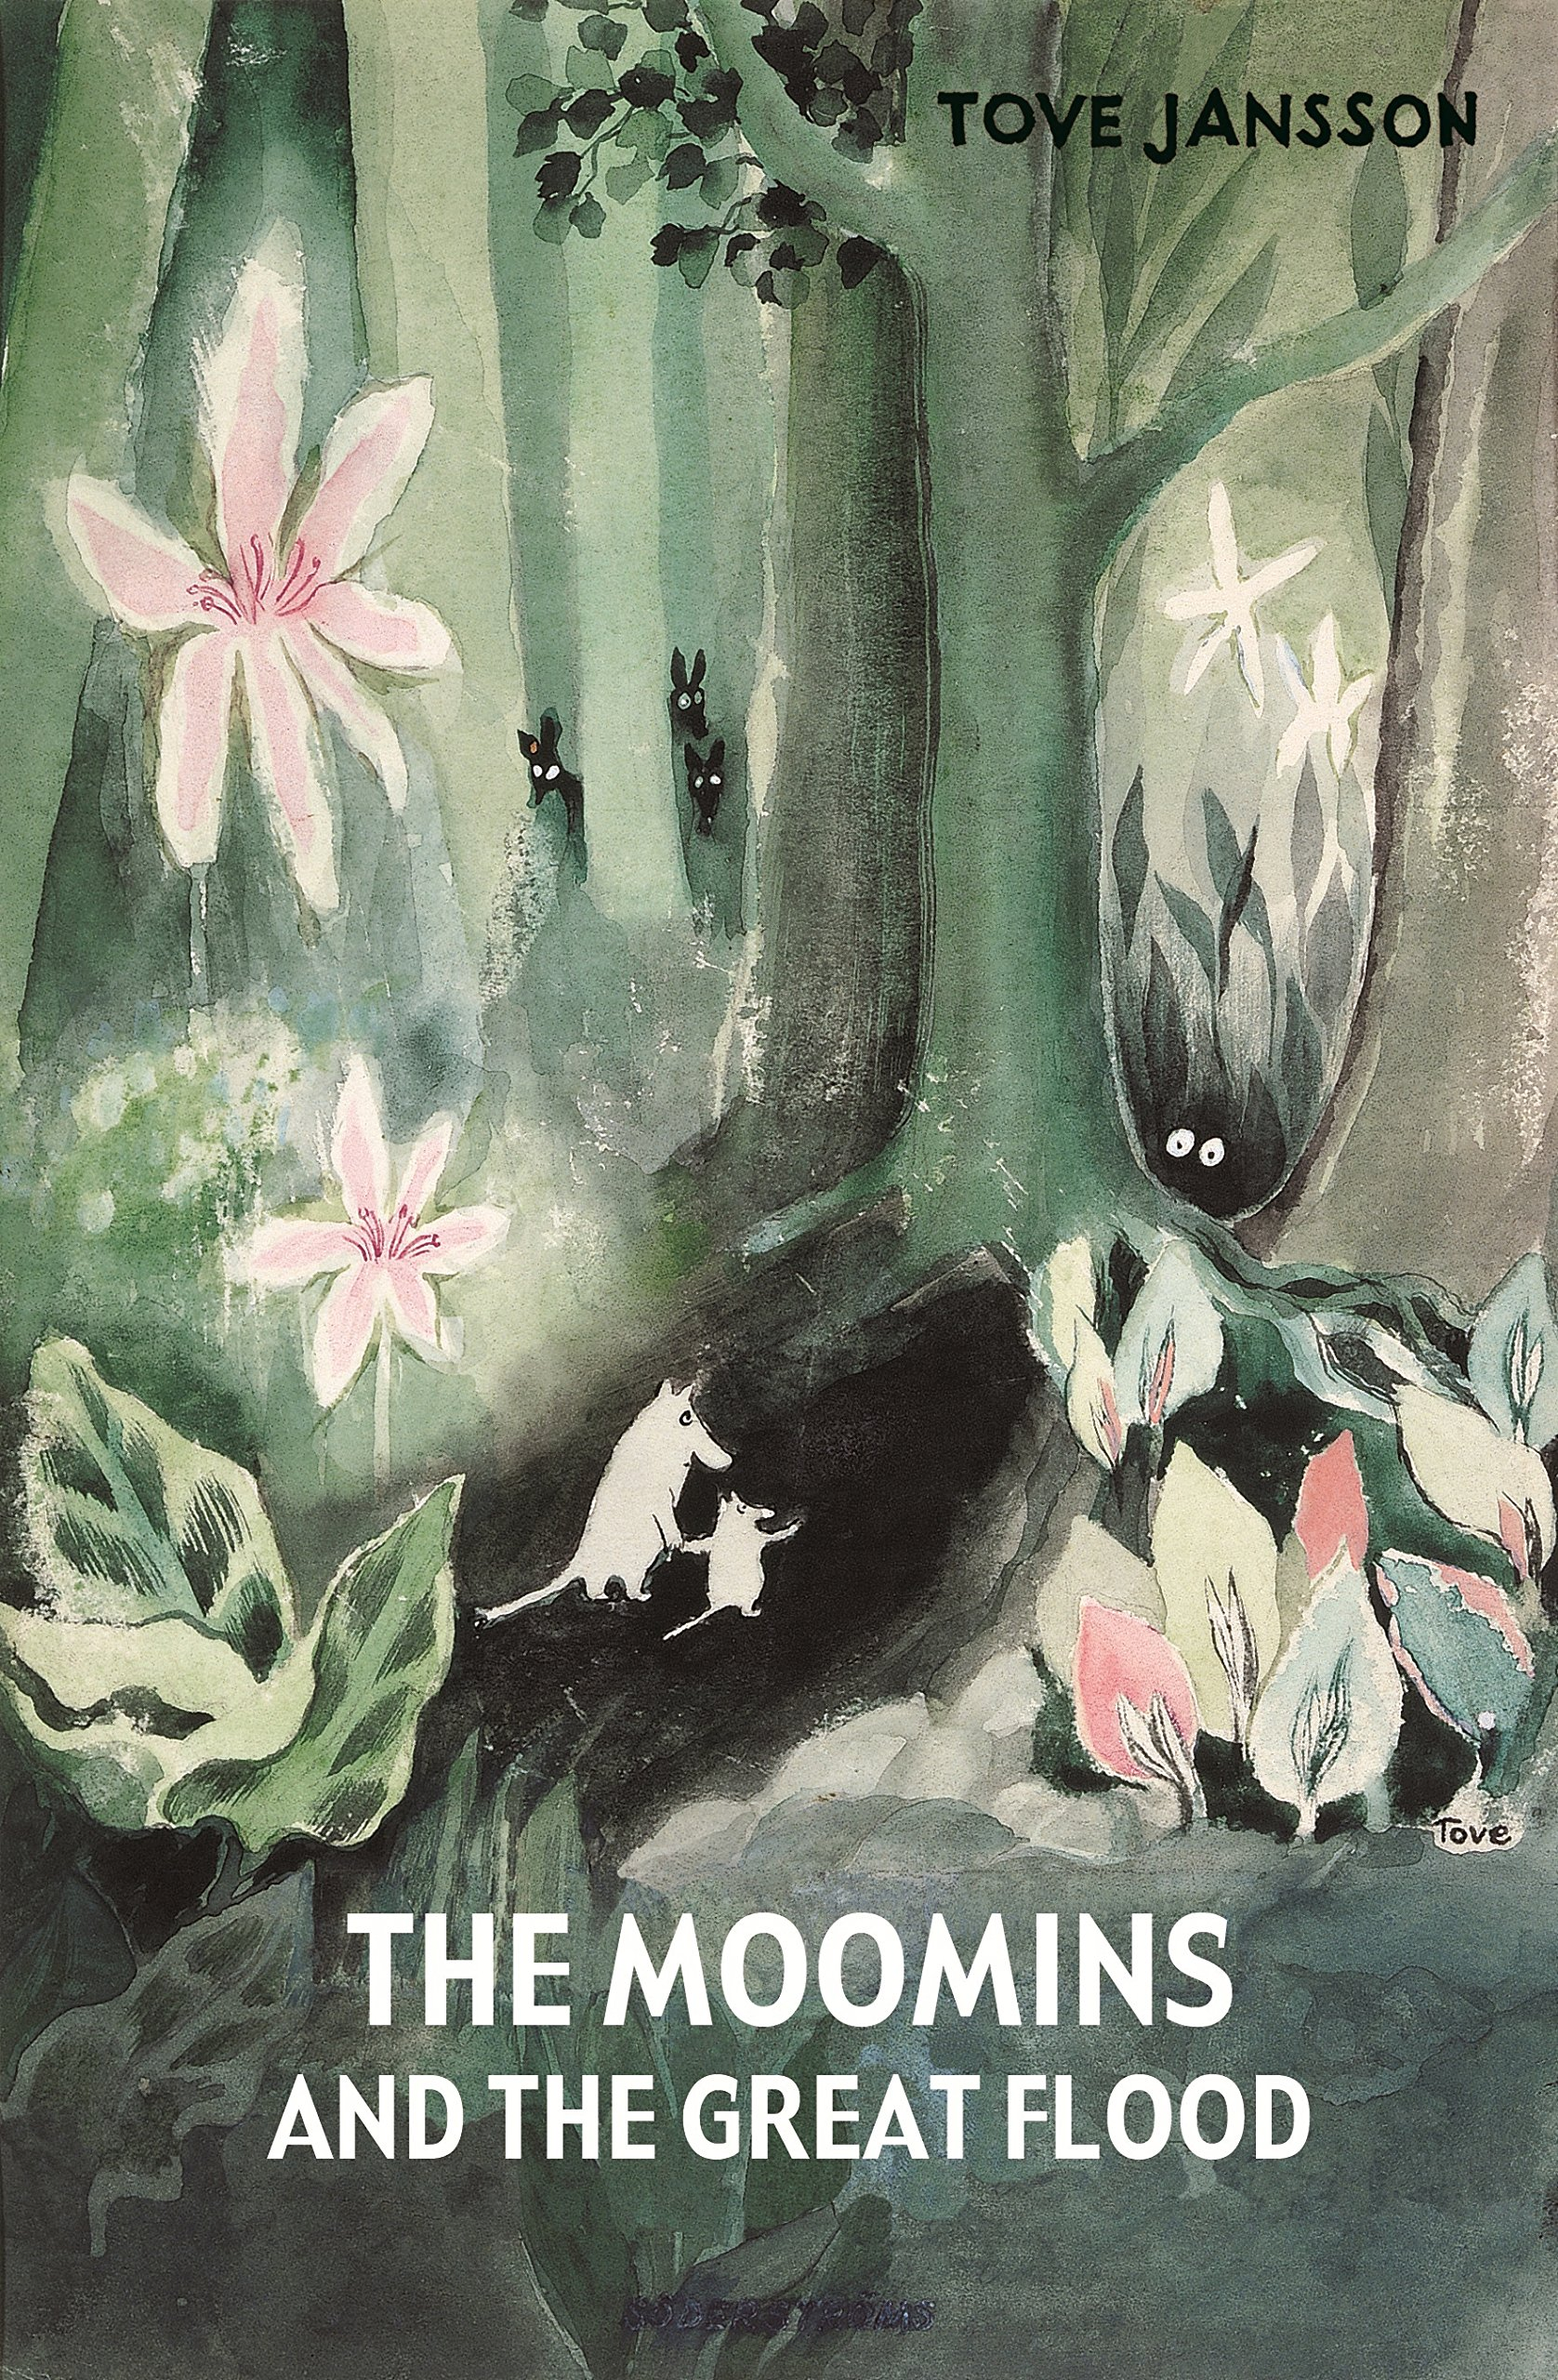 Tove Jansson The Moomins & The Great Flood Sort of Books.jpg